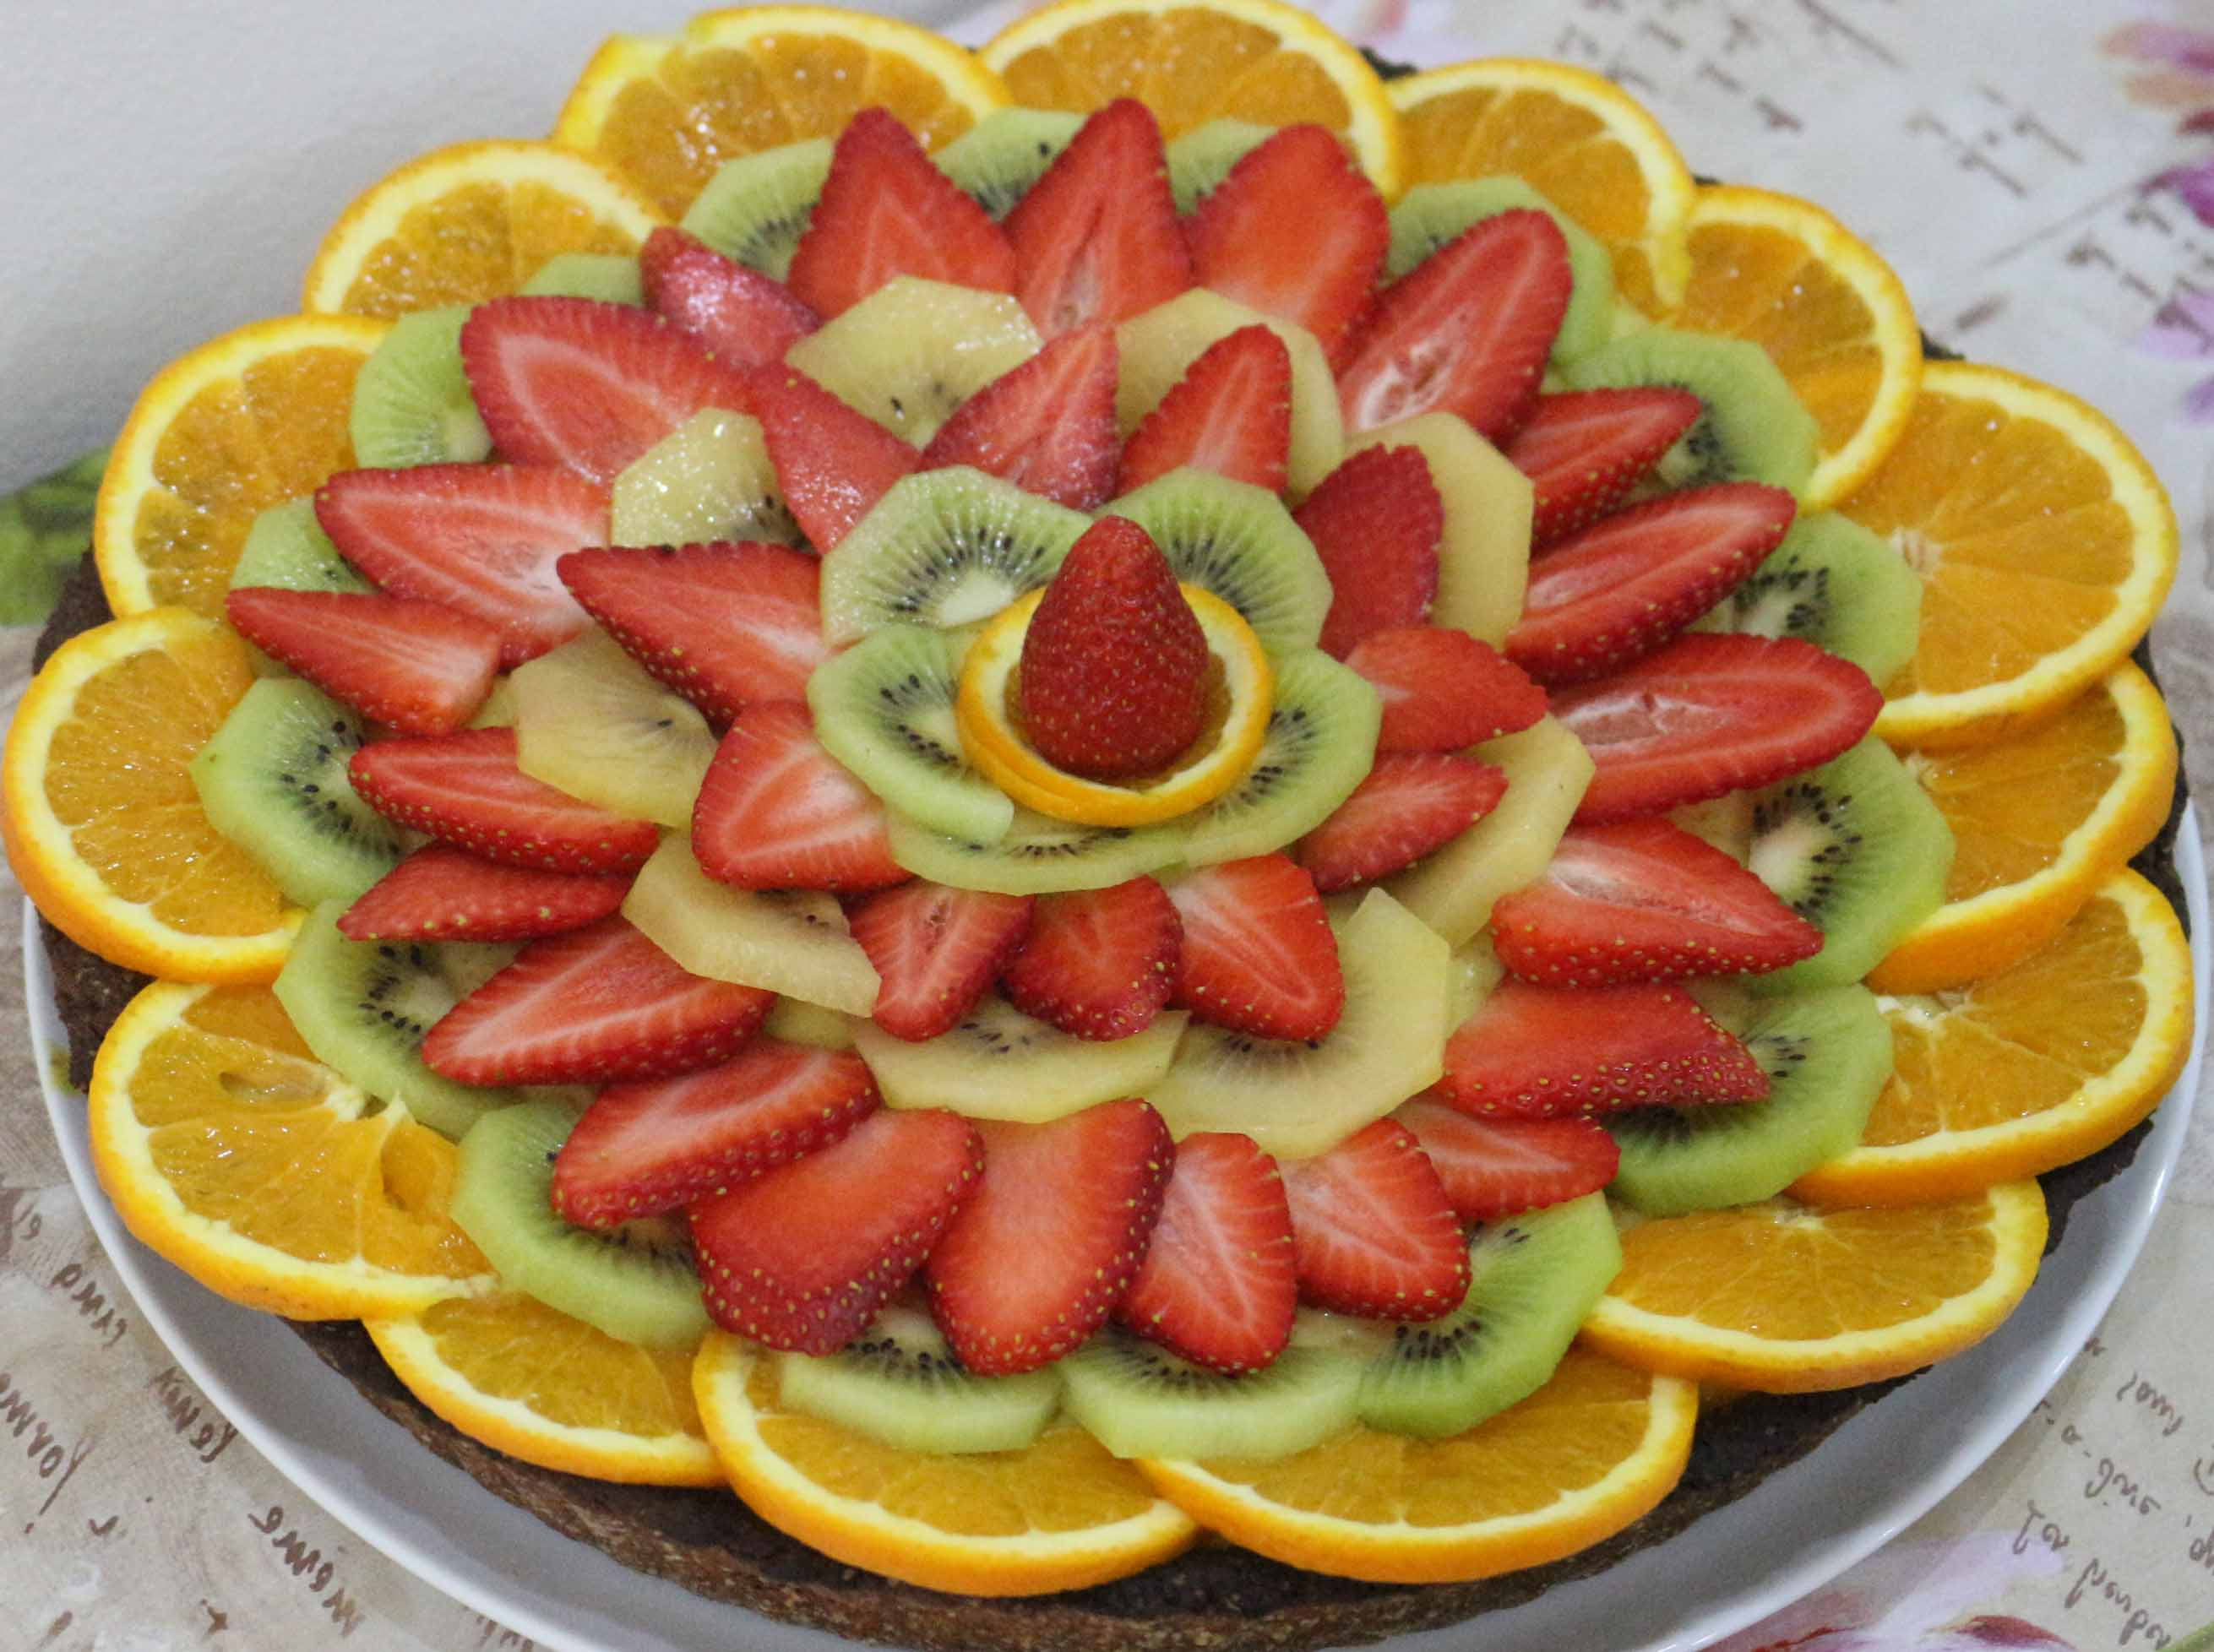 Crostata alla fruttaOriginally Posted on 6 June 2016, last updated on 3 July 2016 and reposted on 15 October 2020